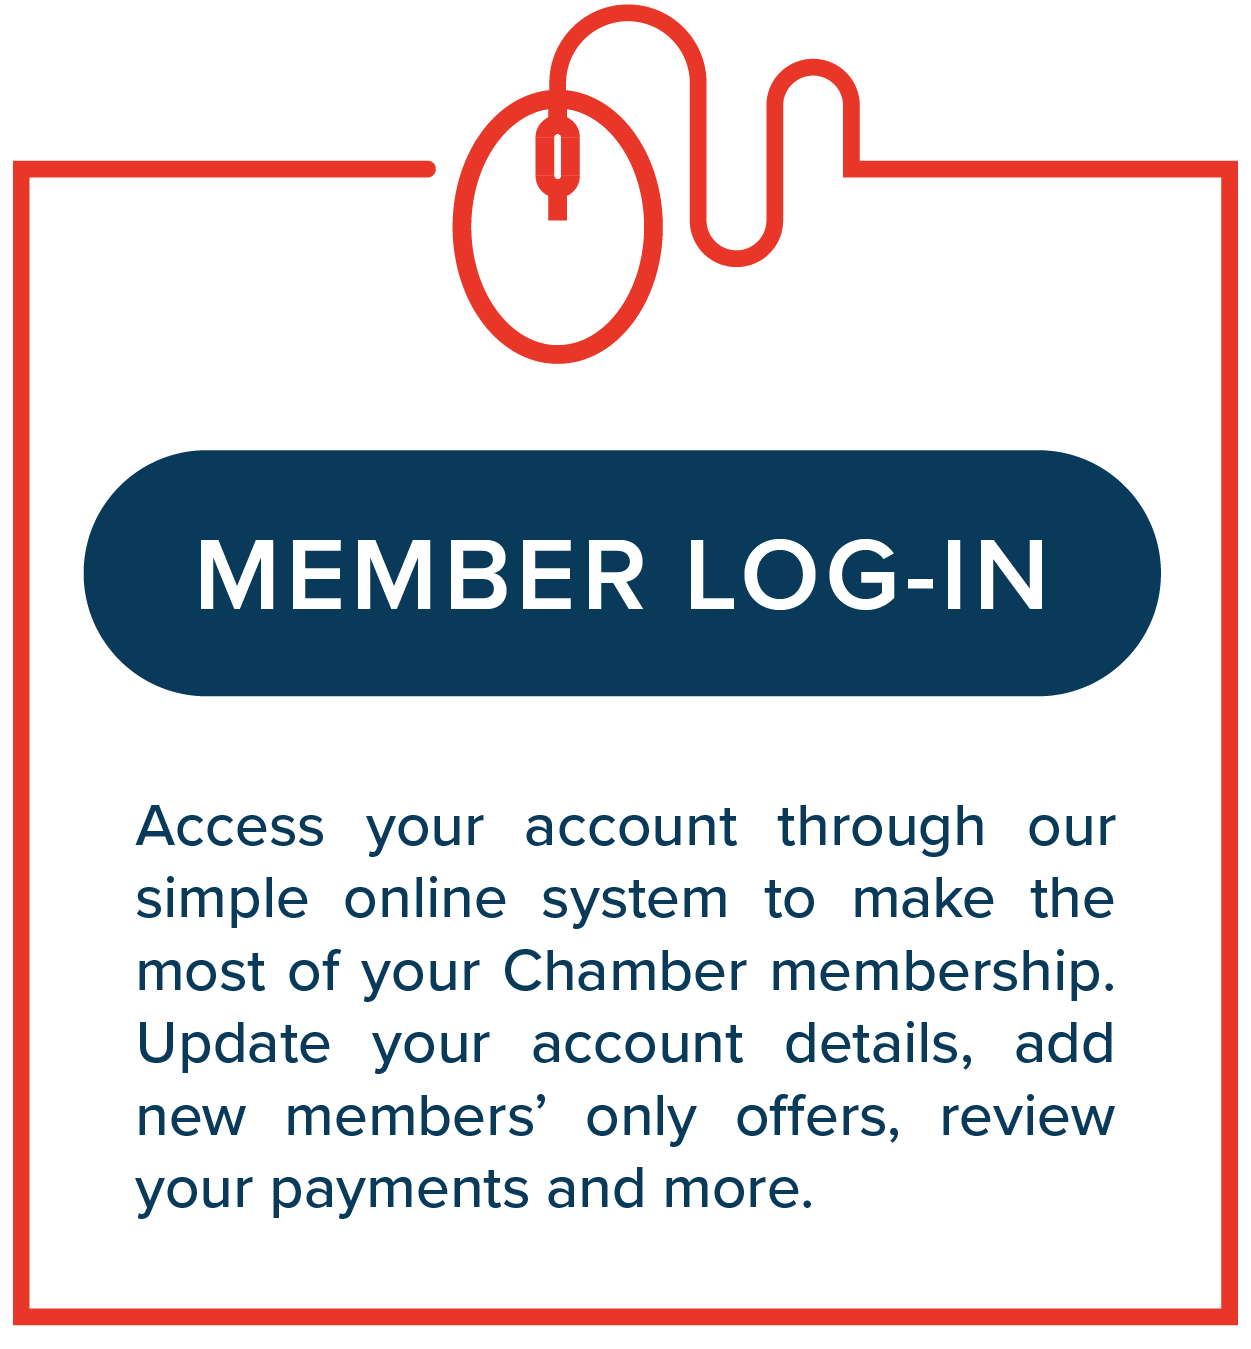 Member Log-in.  Access your account through our simple online system to make the most of your Chamber membership. Update your account details, add new members' only offers, review your payments and more.